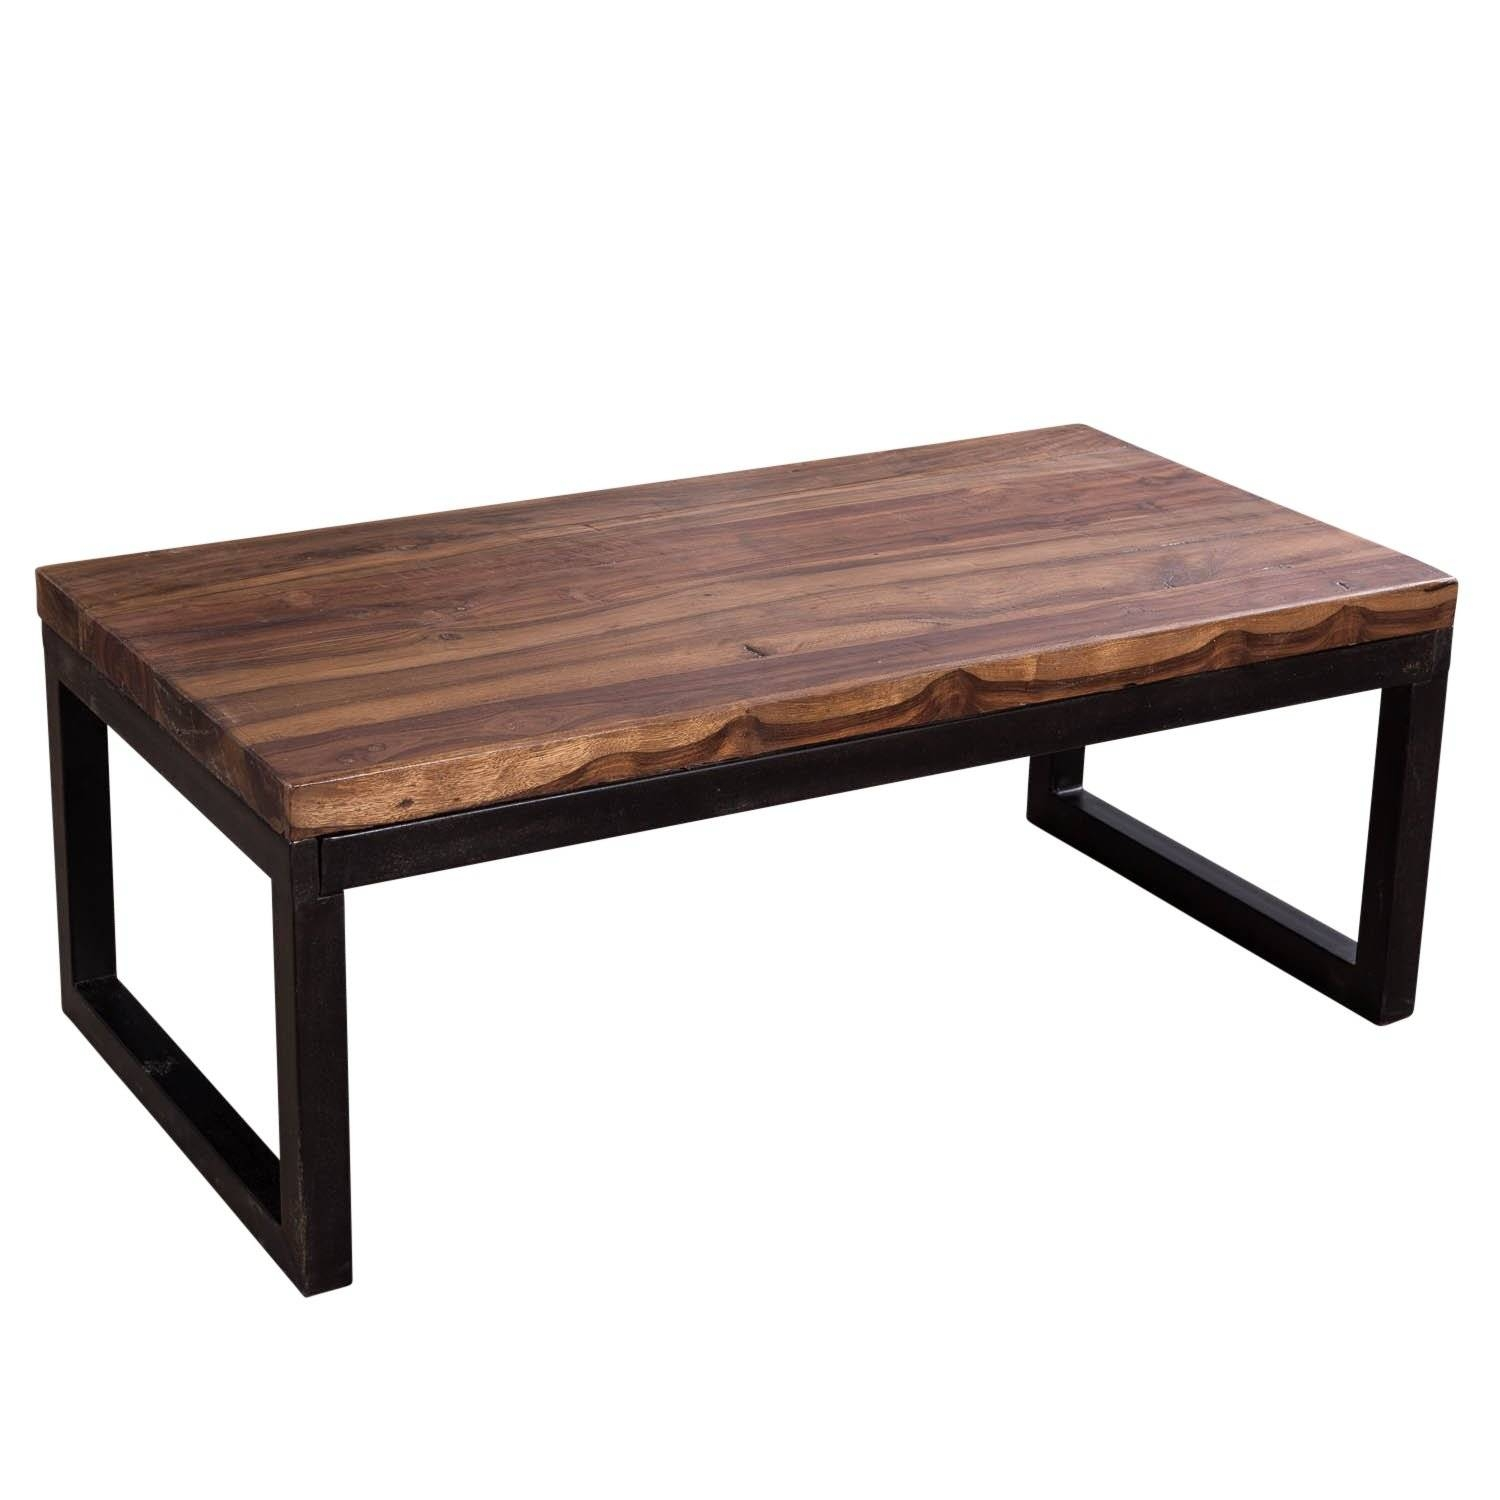 15 Best Collection of Extra Long Coffee Tables